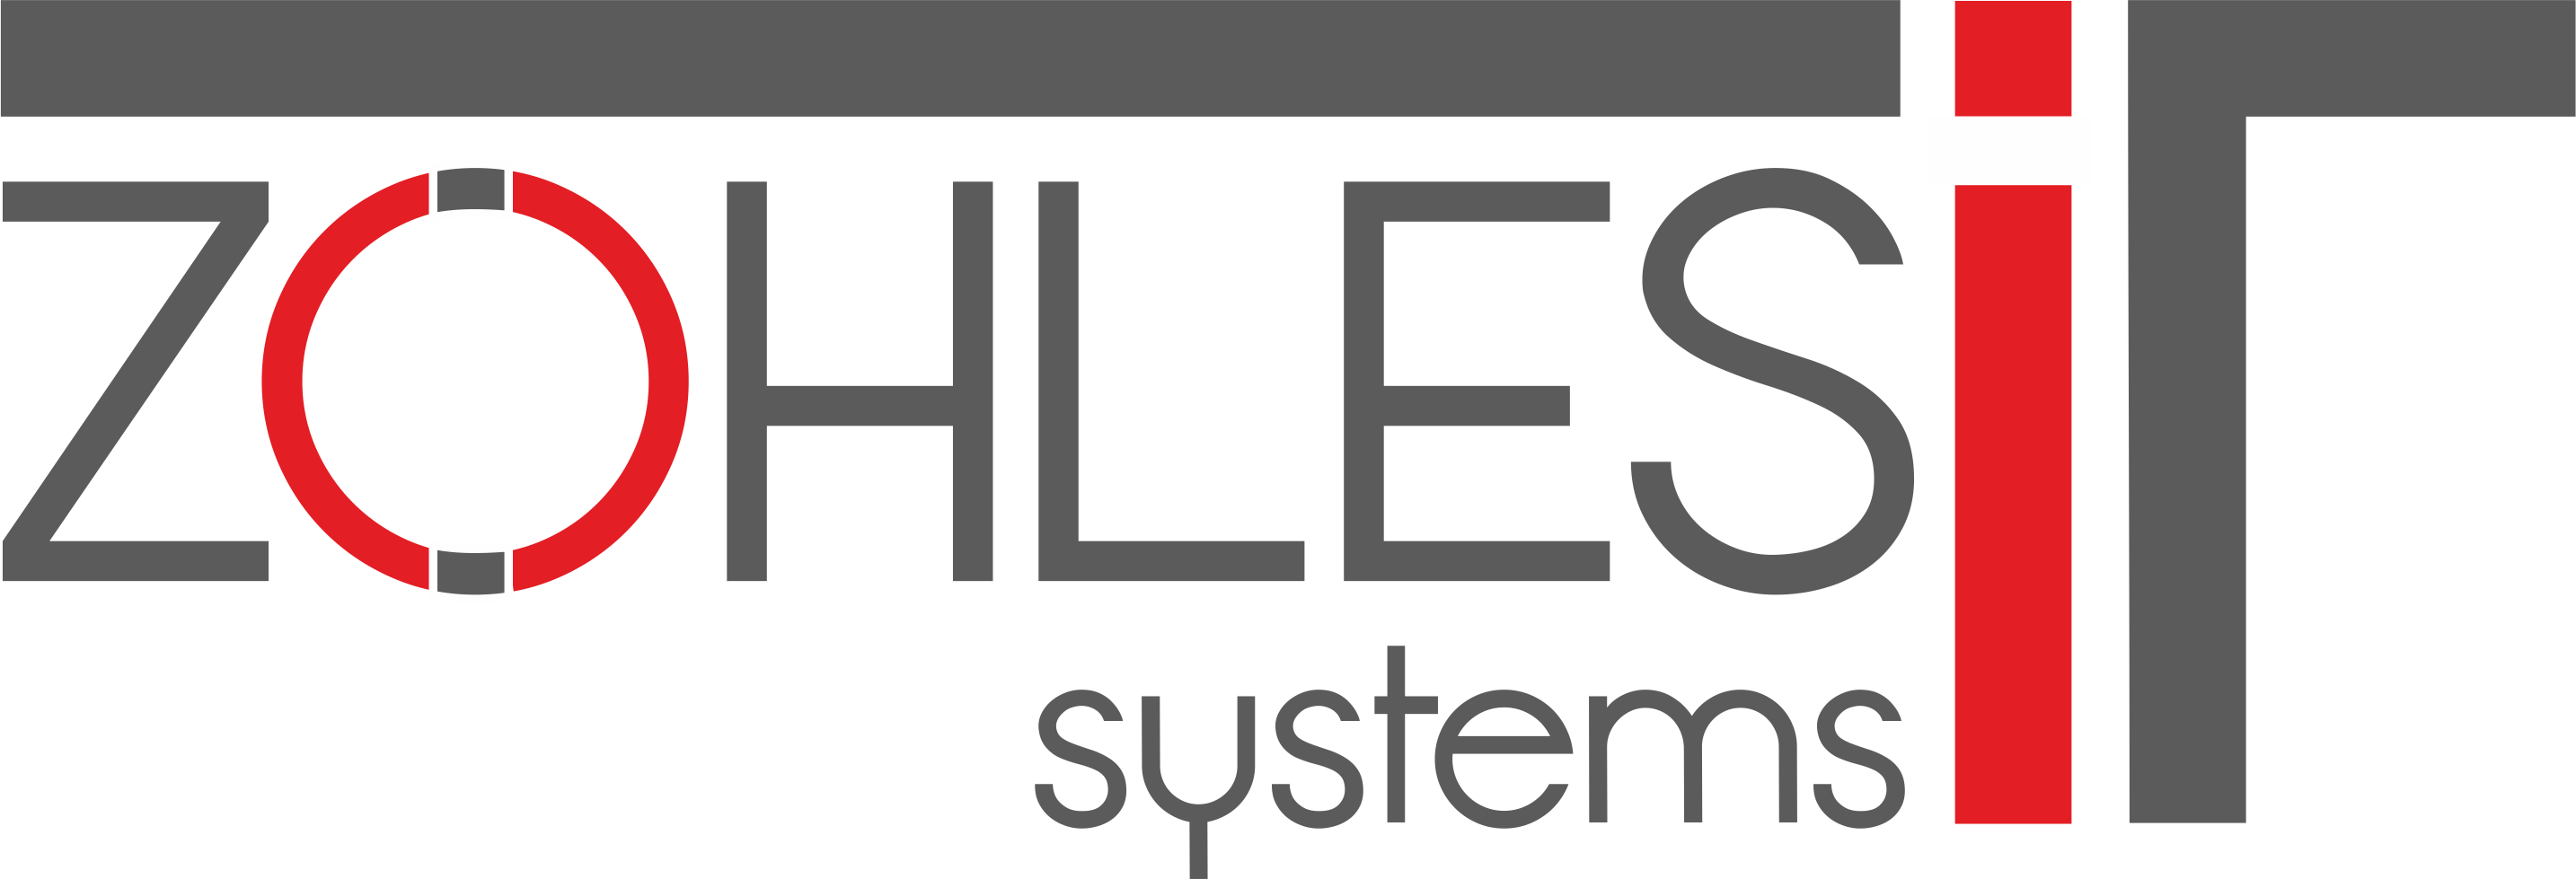 Zohles IT-Systems | Andre Zohles